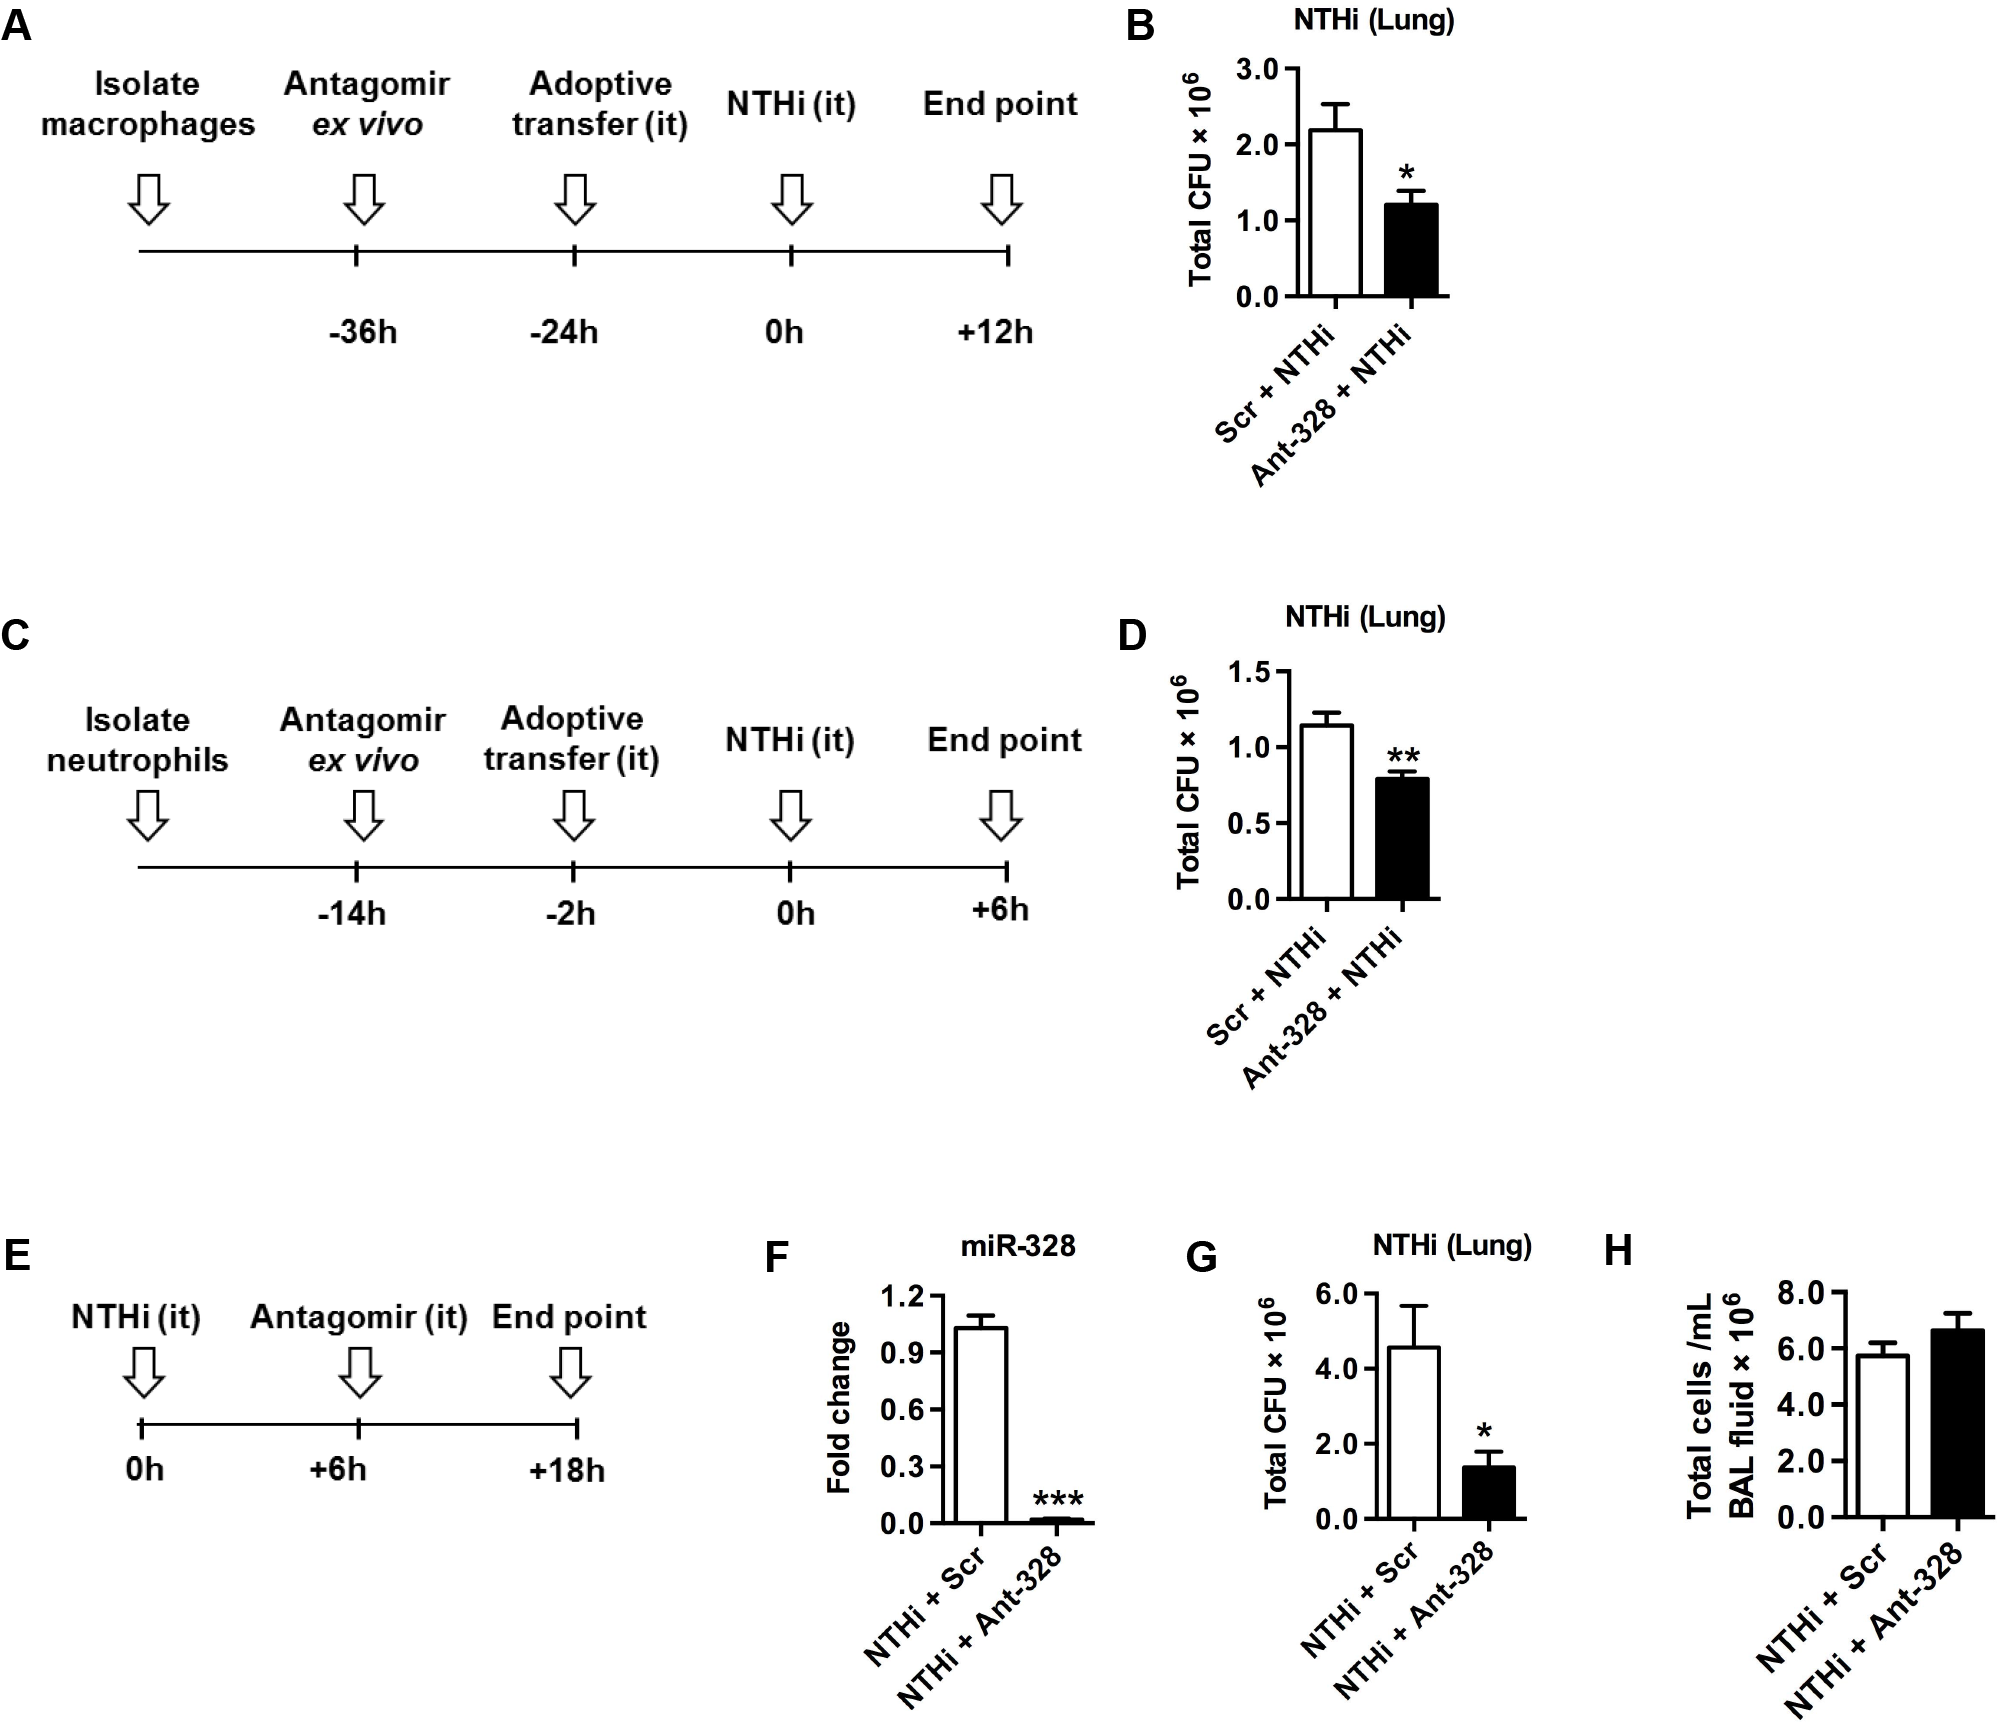 Inhibiting miR-328 improves NTHi clearance in the lungs <i>in vivo</i>.